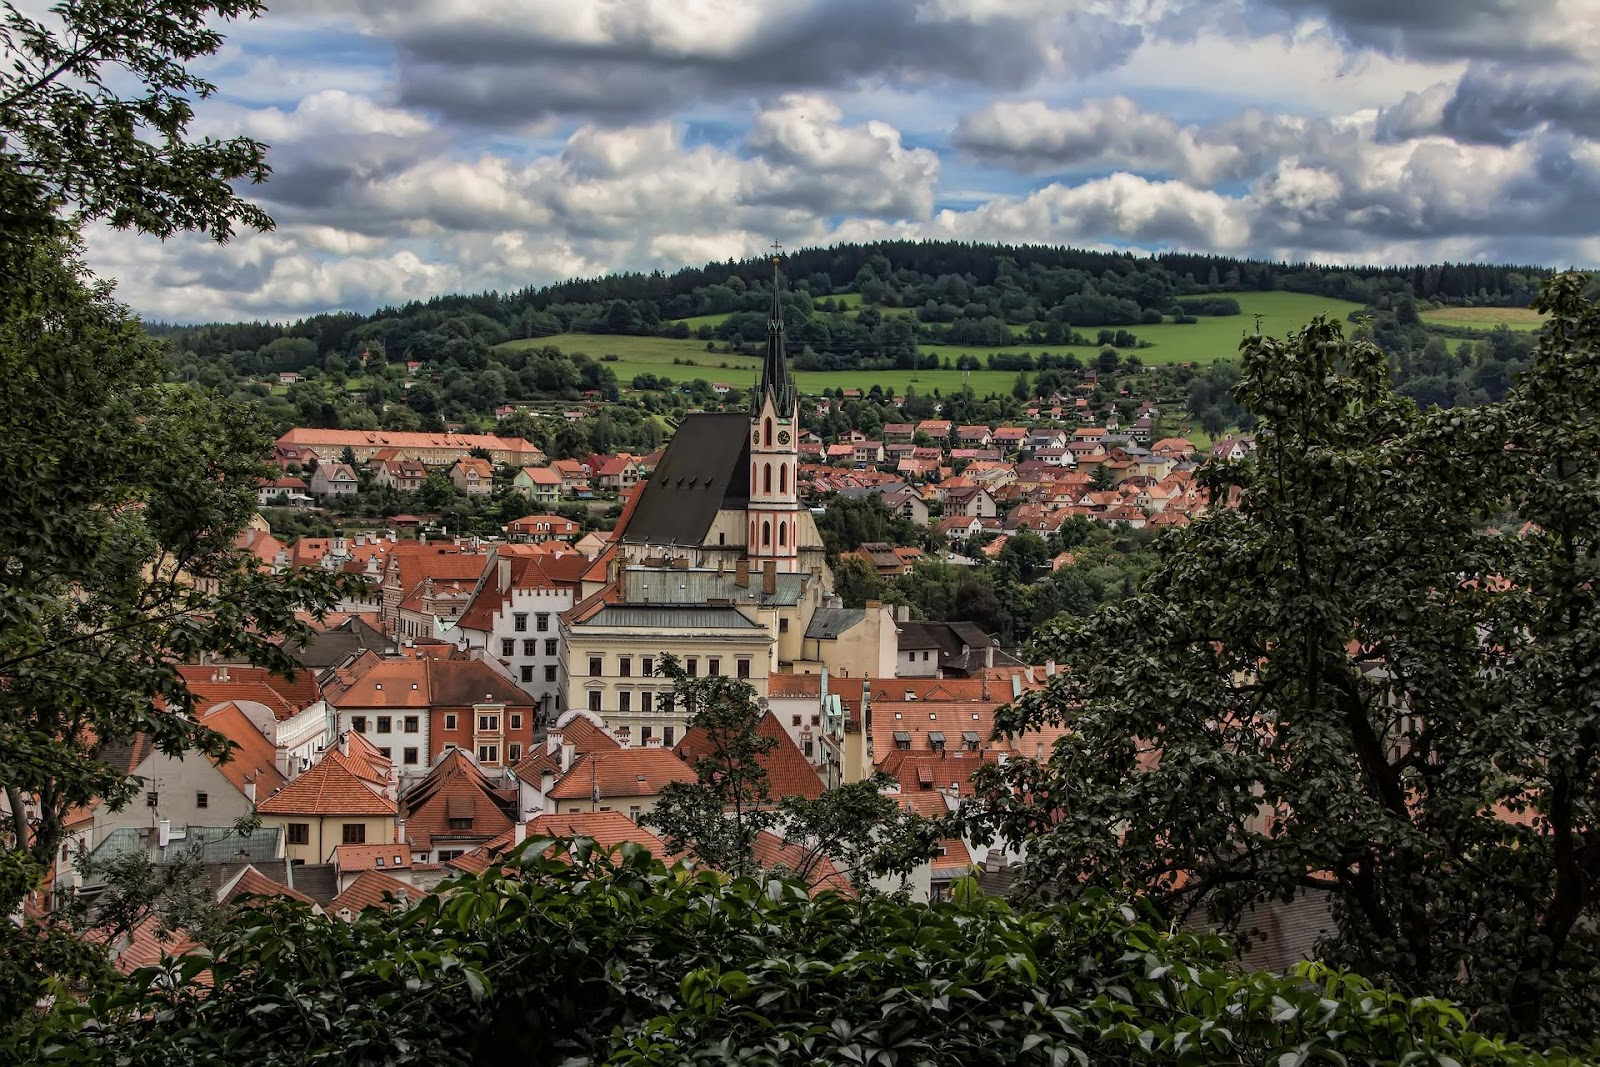 C:\Users\Tara\AppData\Local\Microsoft\Windows\INetCache\Content.Word\cesky-krumlov-1815874_1920.jpg